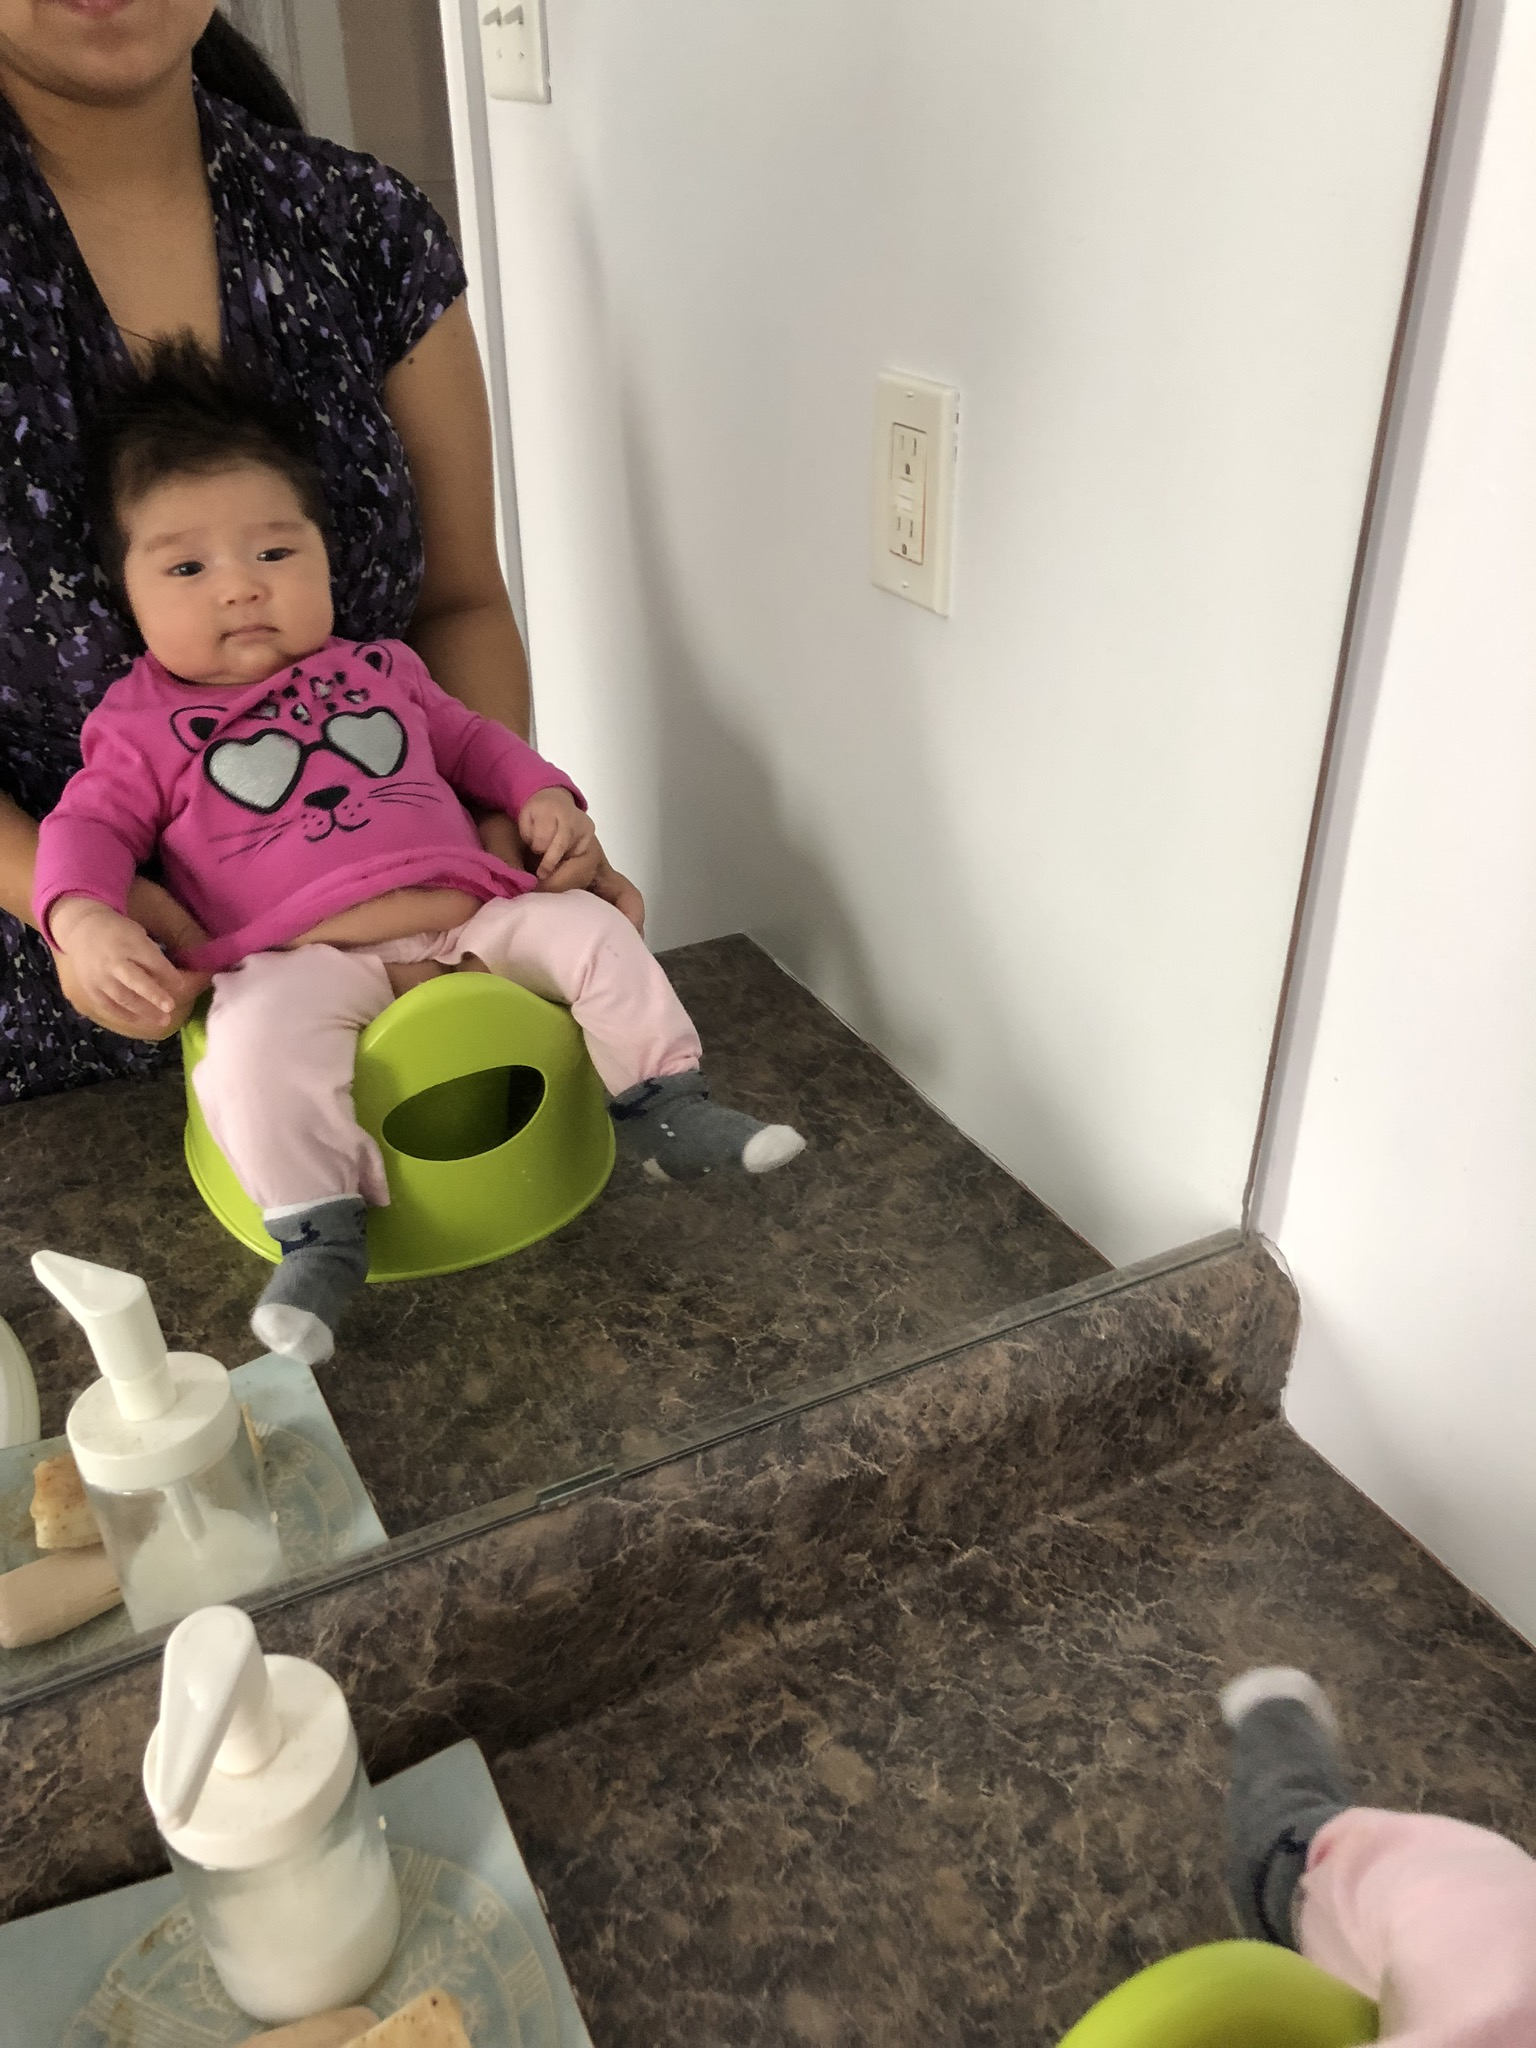 Split pants should open up when baby opens her legs to sit on the potty. They also protect her bum cheeks from touching the cold plastic of the potty.